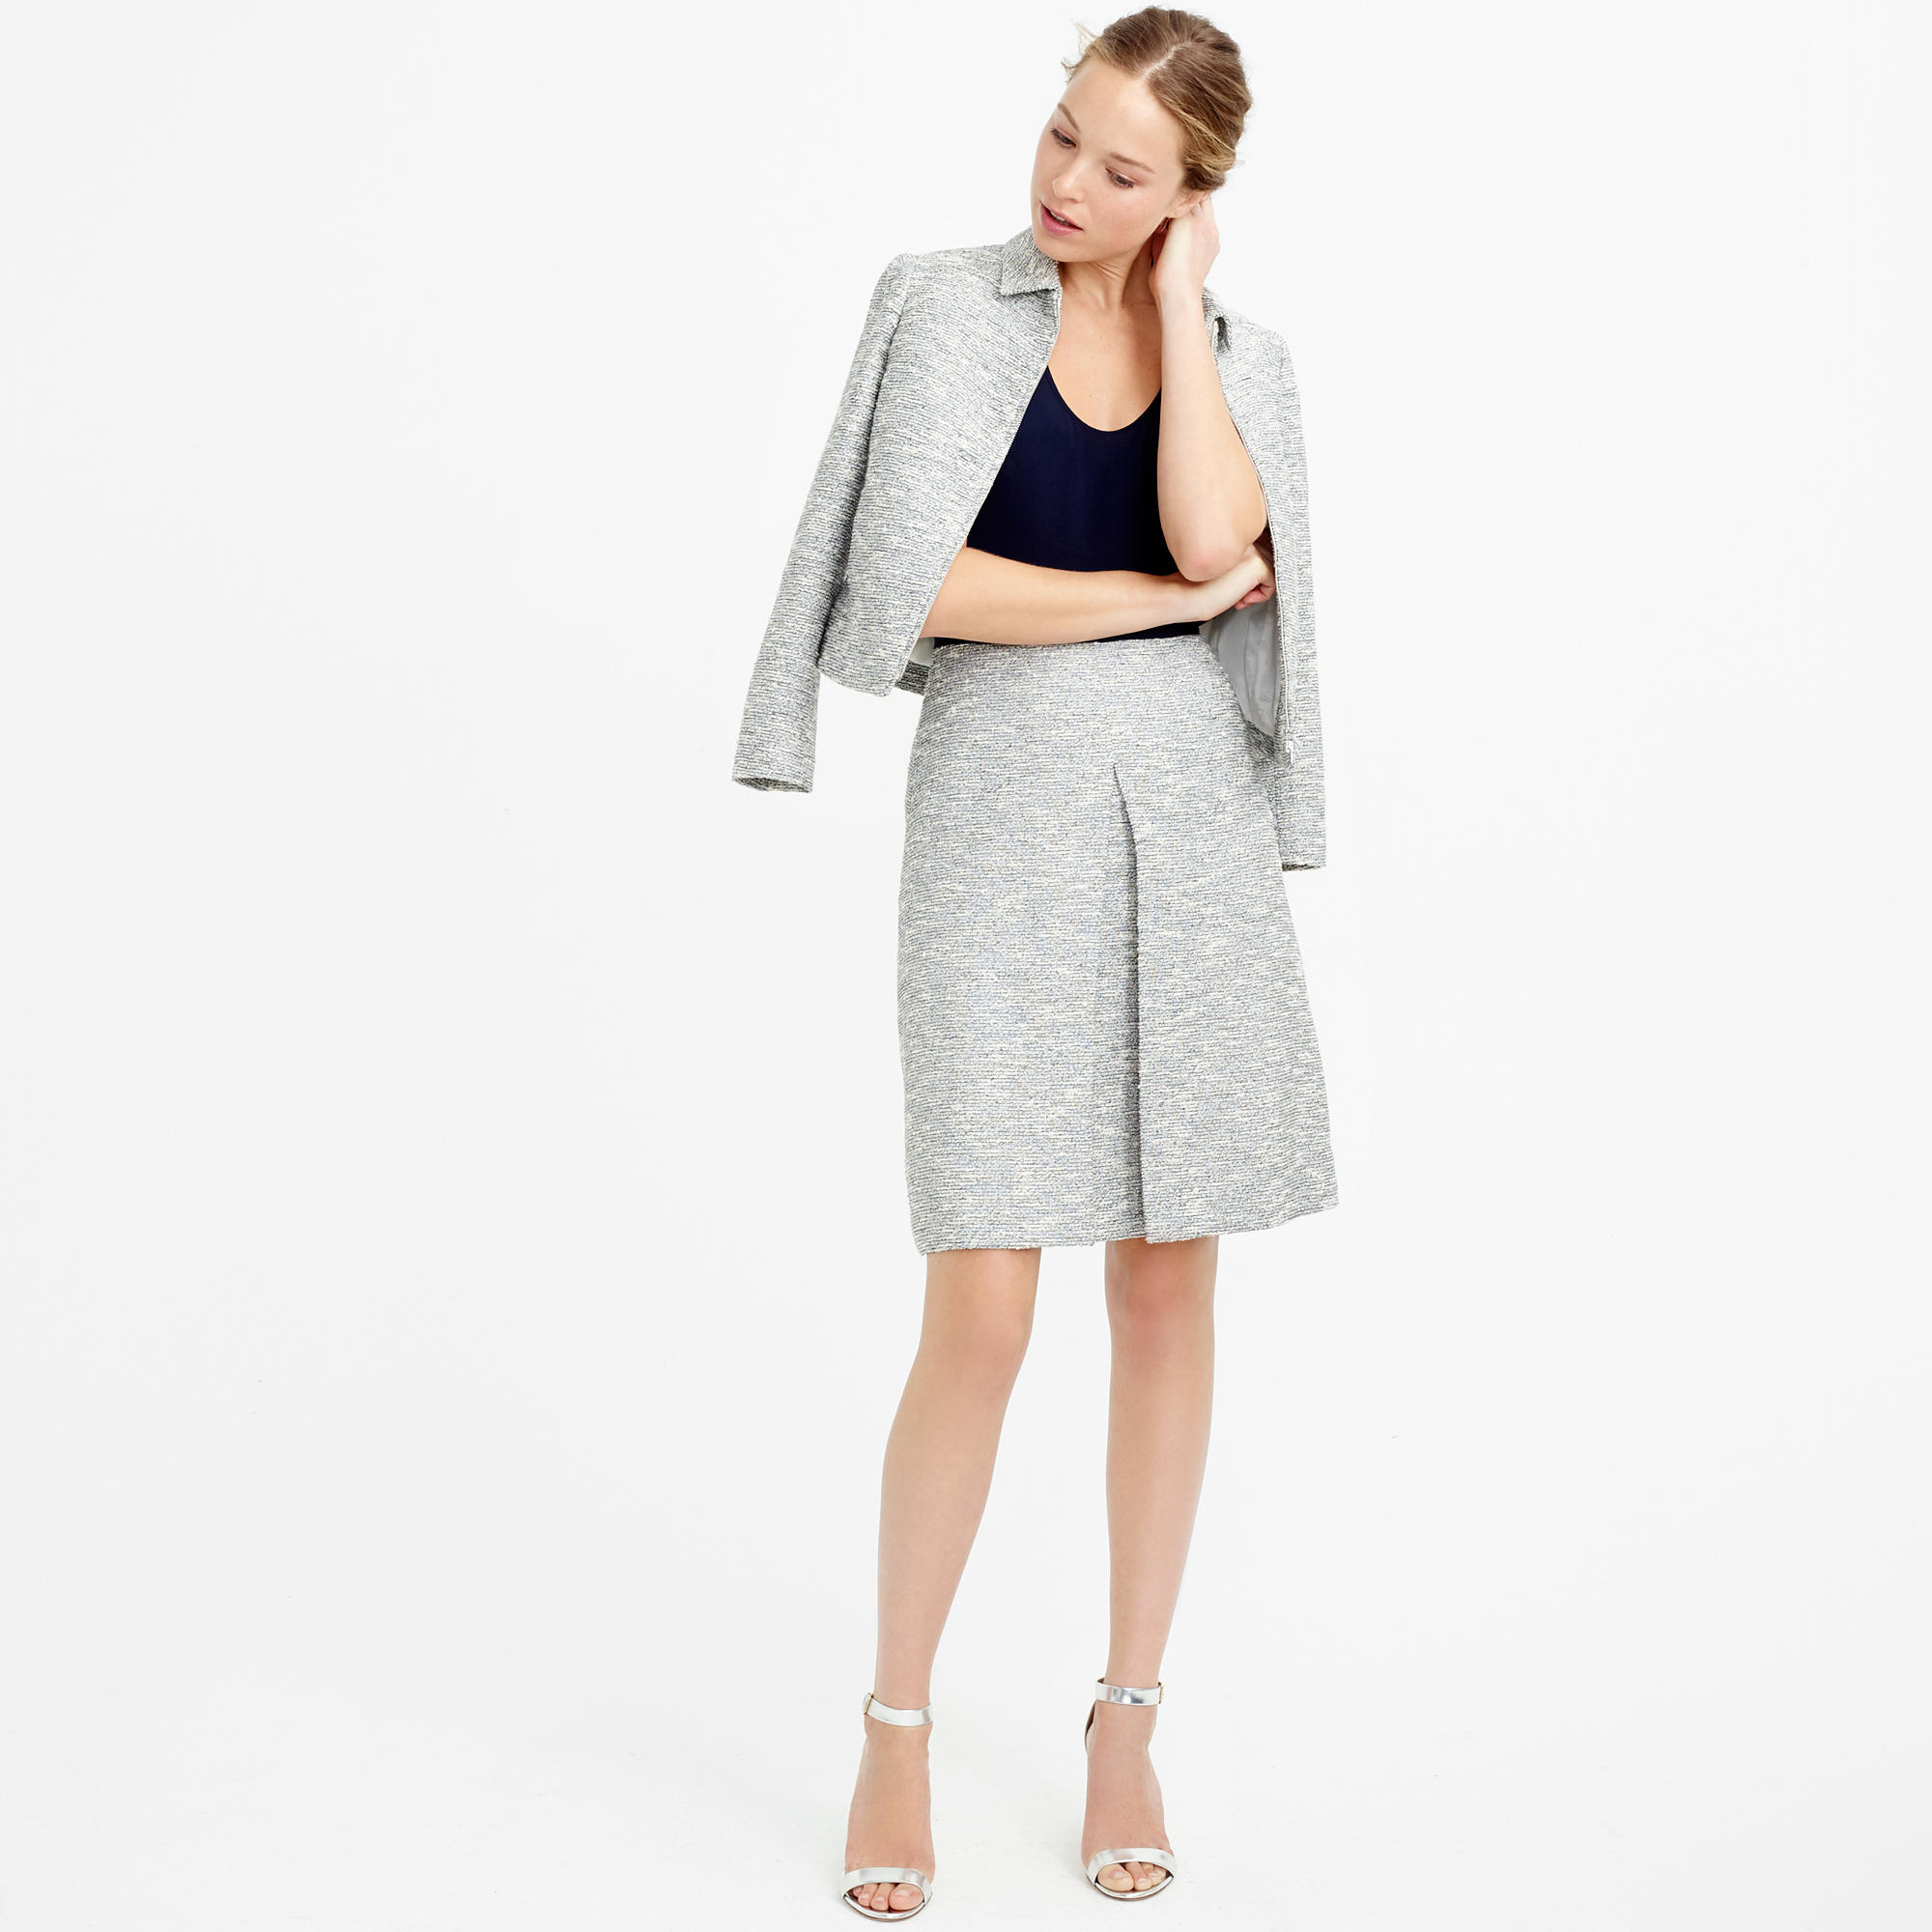 A-line skirt in black-and-white tweed : | J.Crew